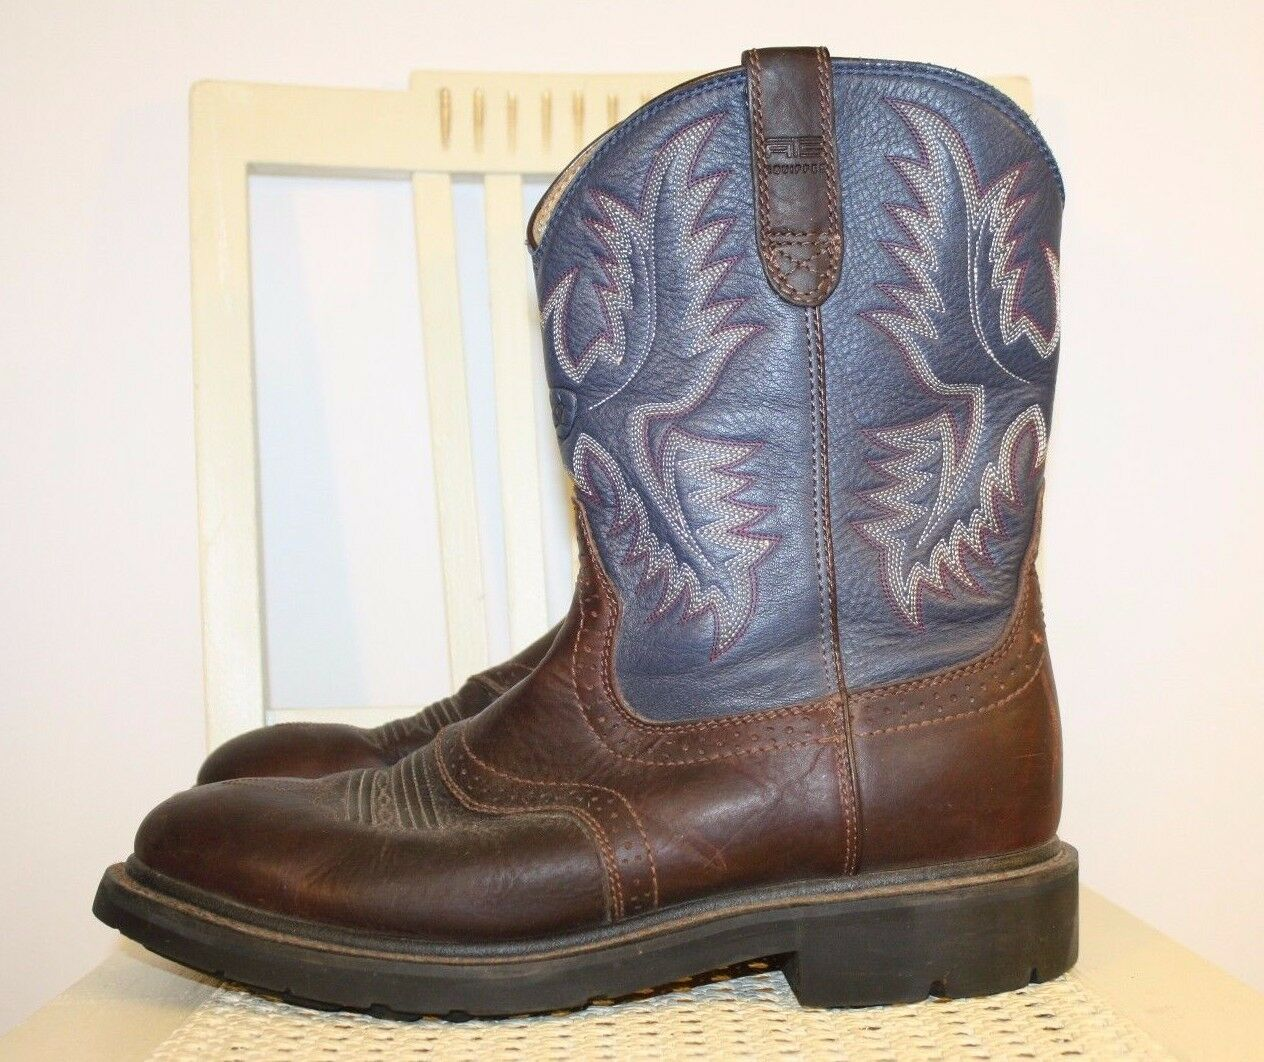 ARIAT Navy bluee Brown Leather Western Cowboy Boots Non-Marking Comfort Sz 10.5 D